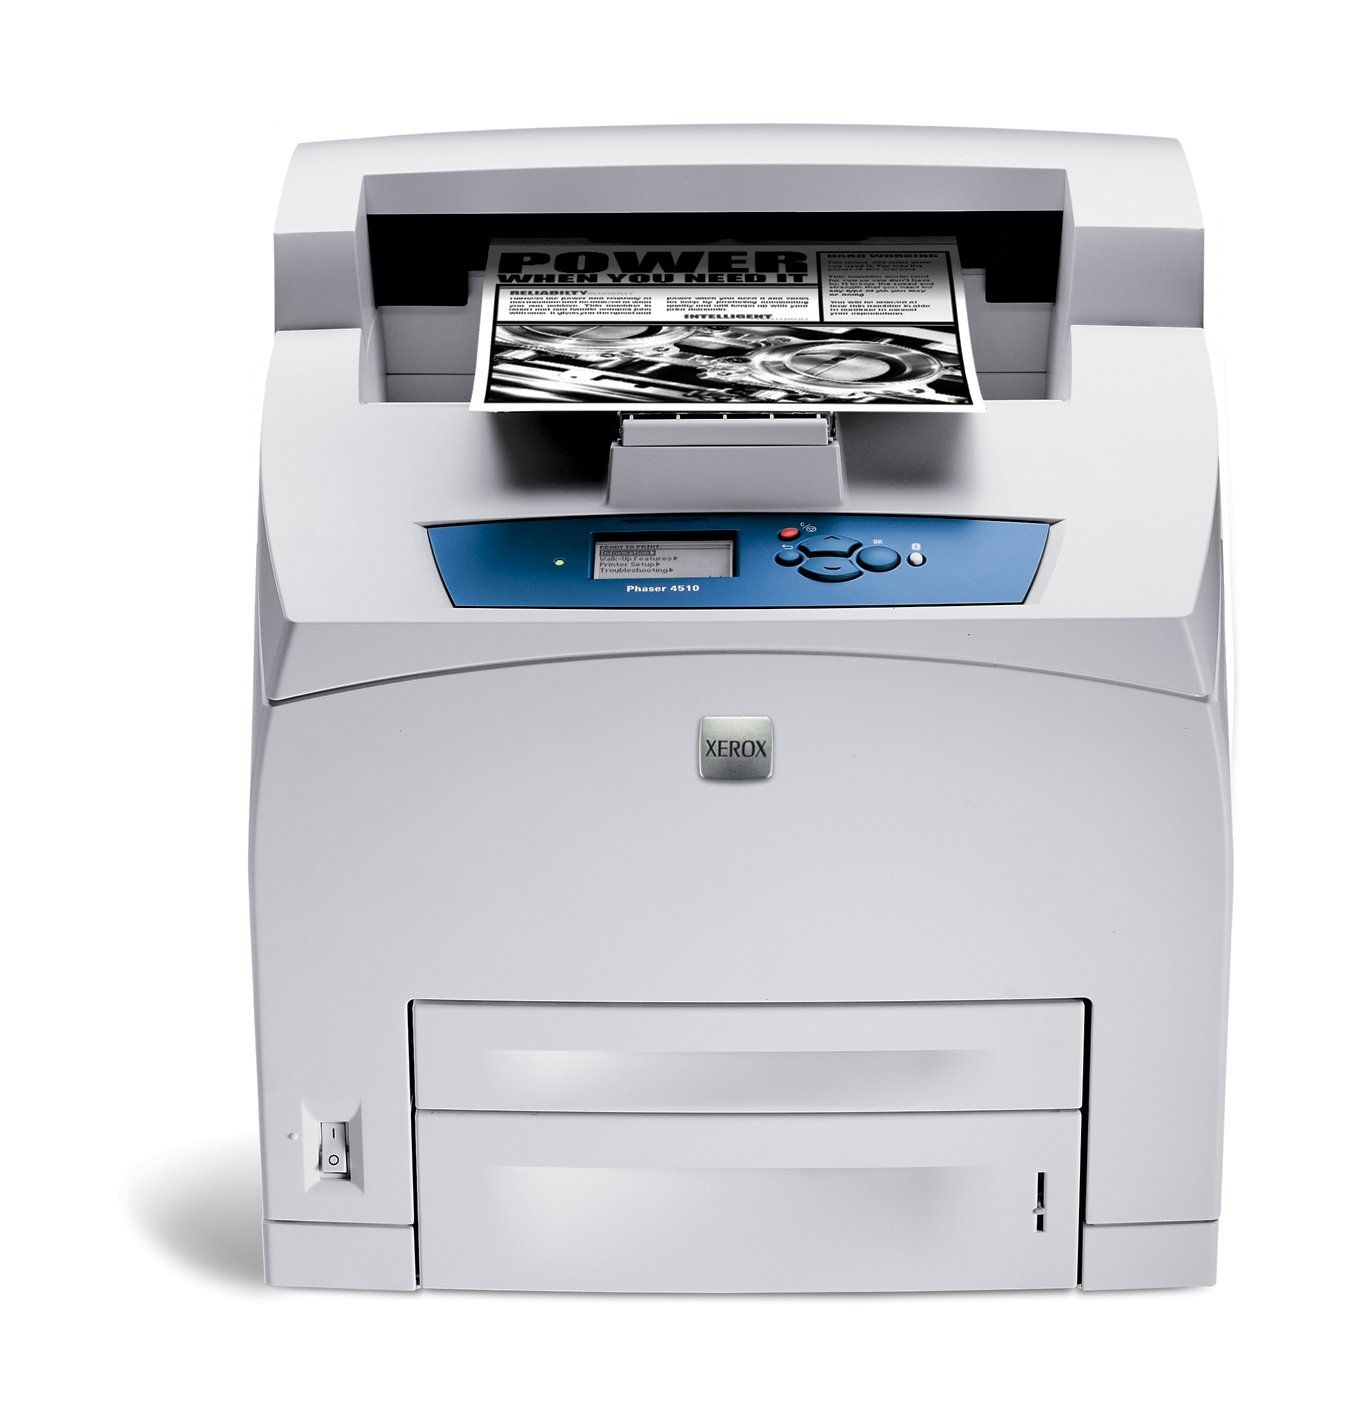 Xerox Laser Printer 4510 N Read More At The Image Link